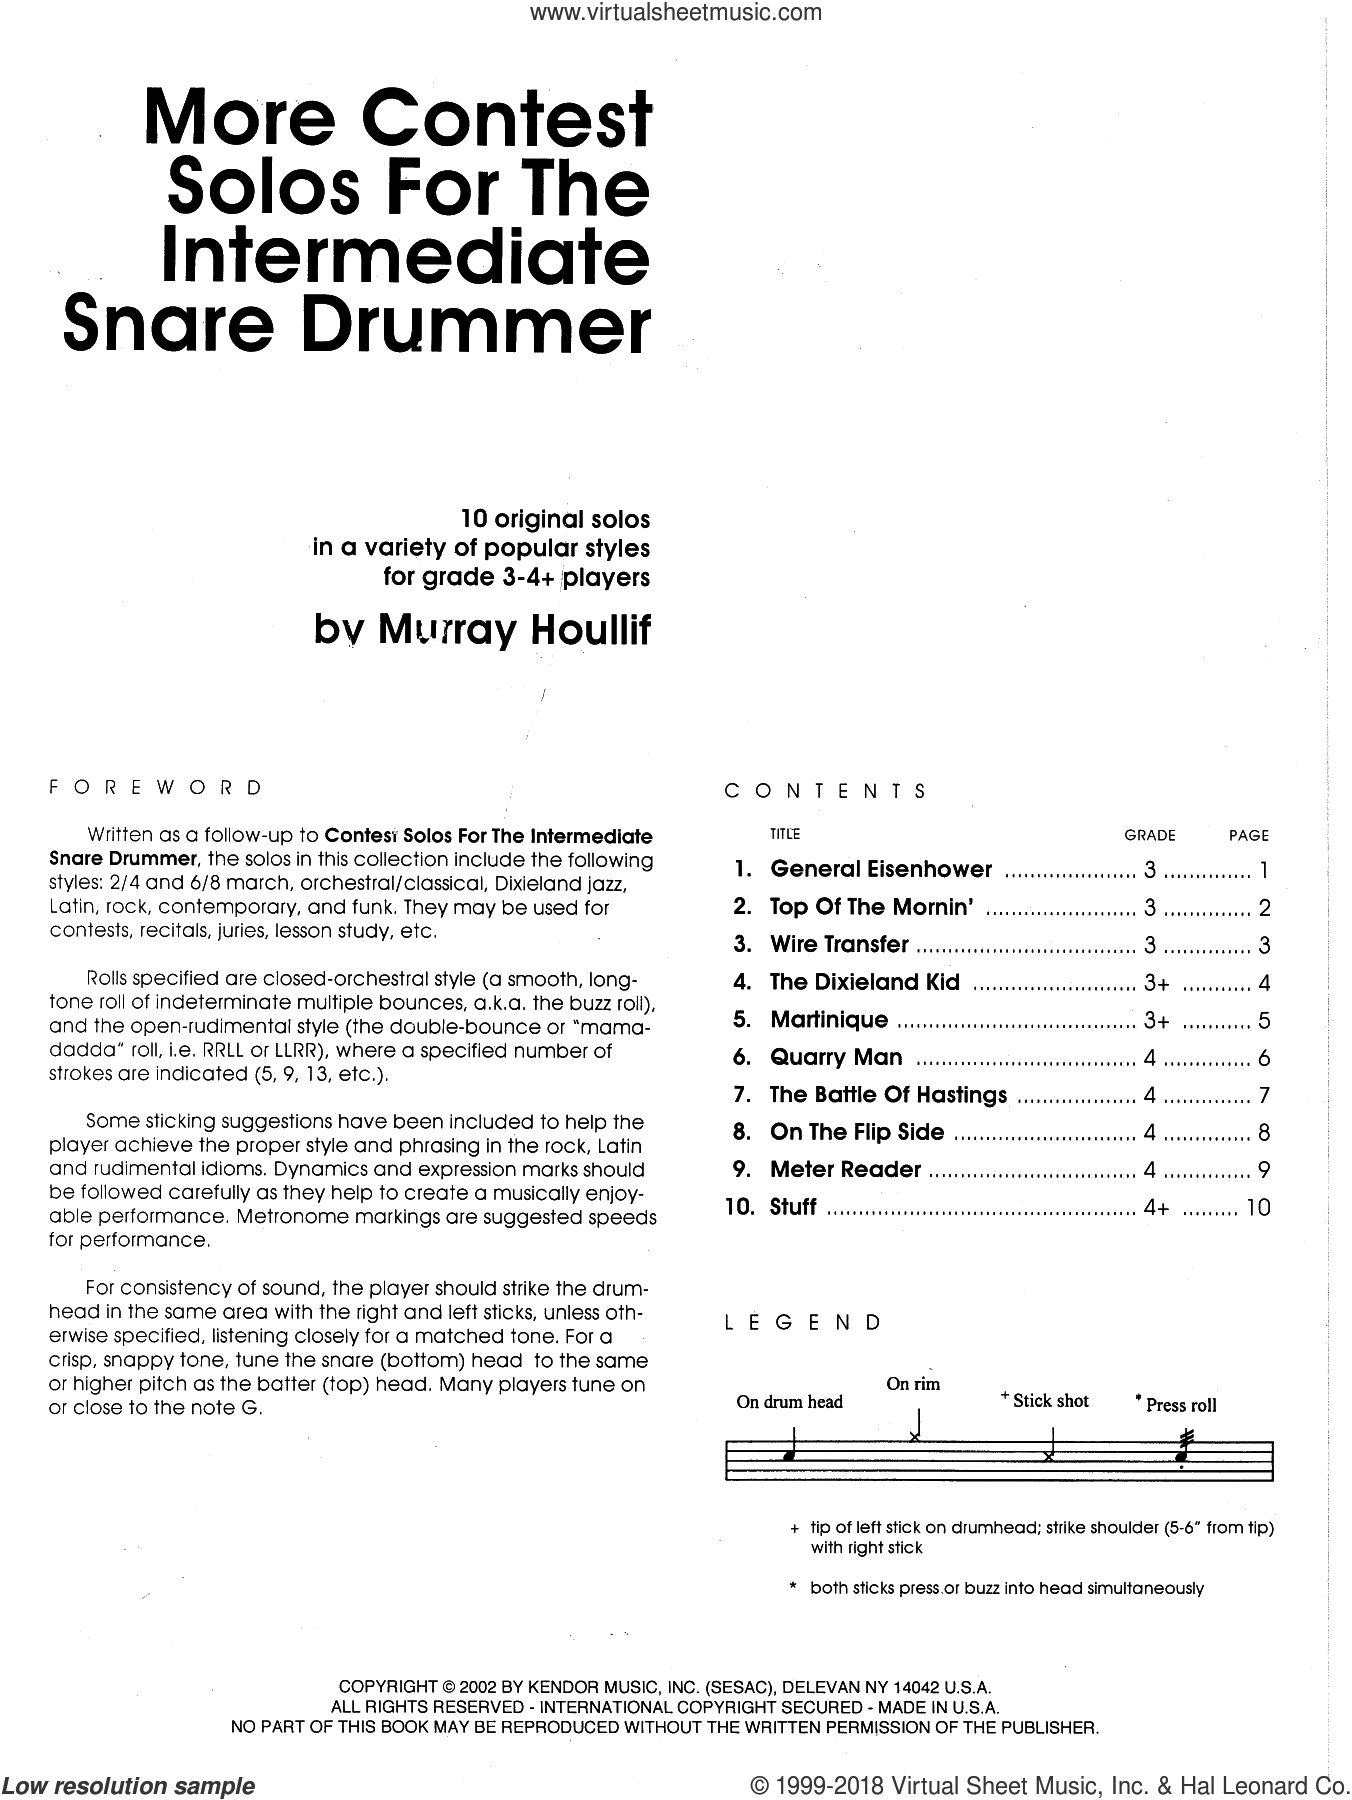 More Contest Solos For The Intermediate Snare Drummer sheet music for percussions by Houllif. Score Image Preview.